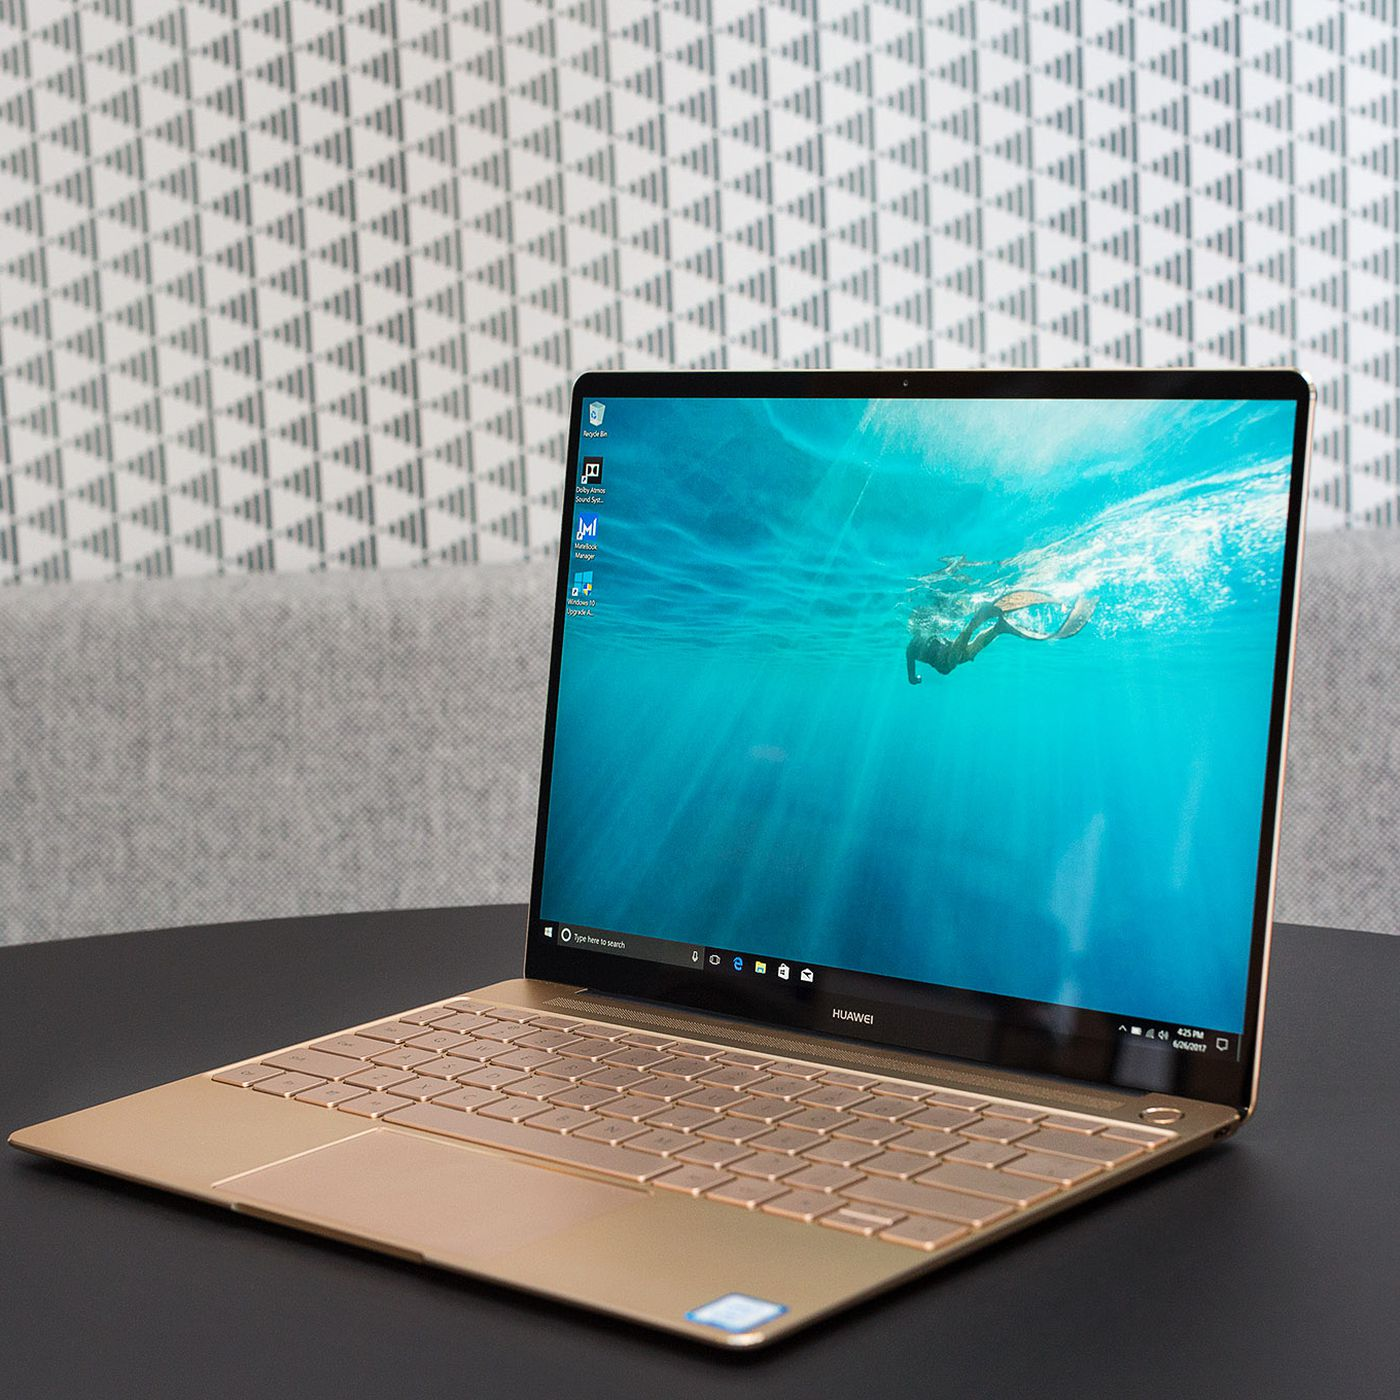 Huawei MateBook X laptop review: more beautiful than useful - The Verge